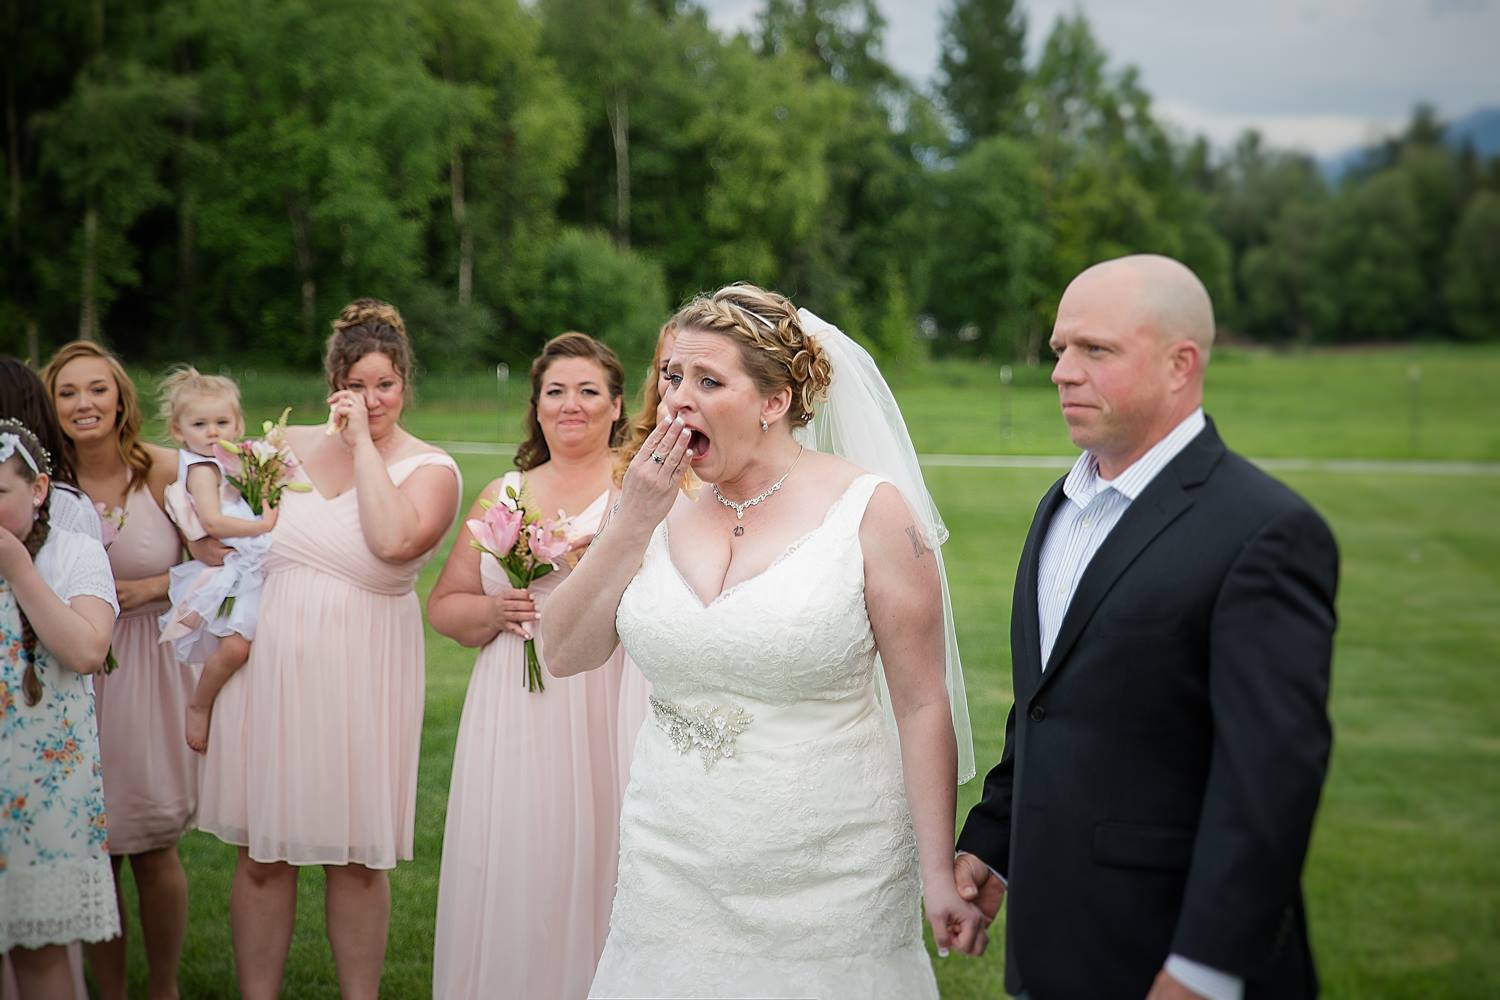 A bride received the surprise of a lifetime on her wedding day when a special guest carrying her late son's heart introduced himself during the ceremony. (Credit: Love Adventured)